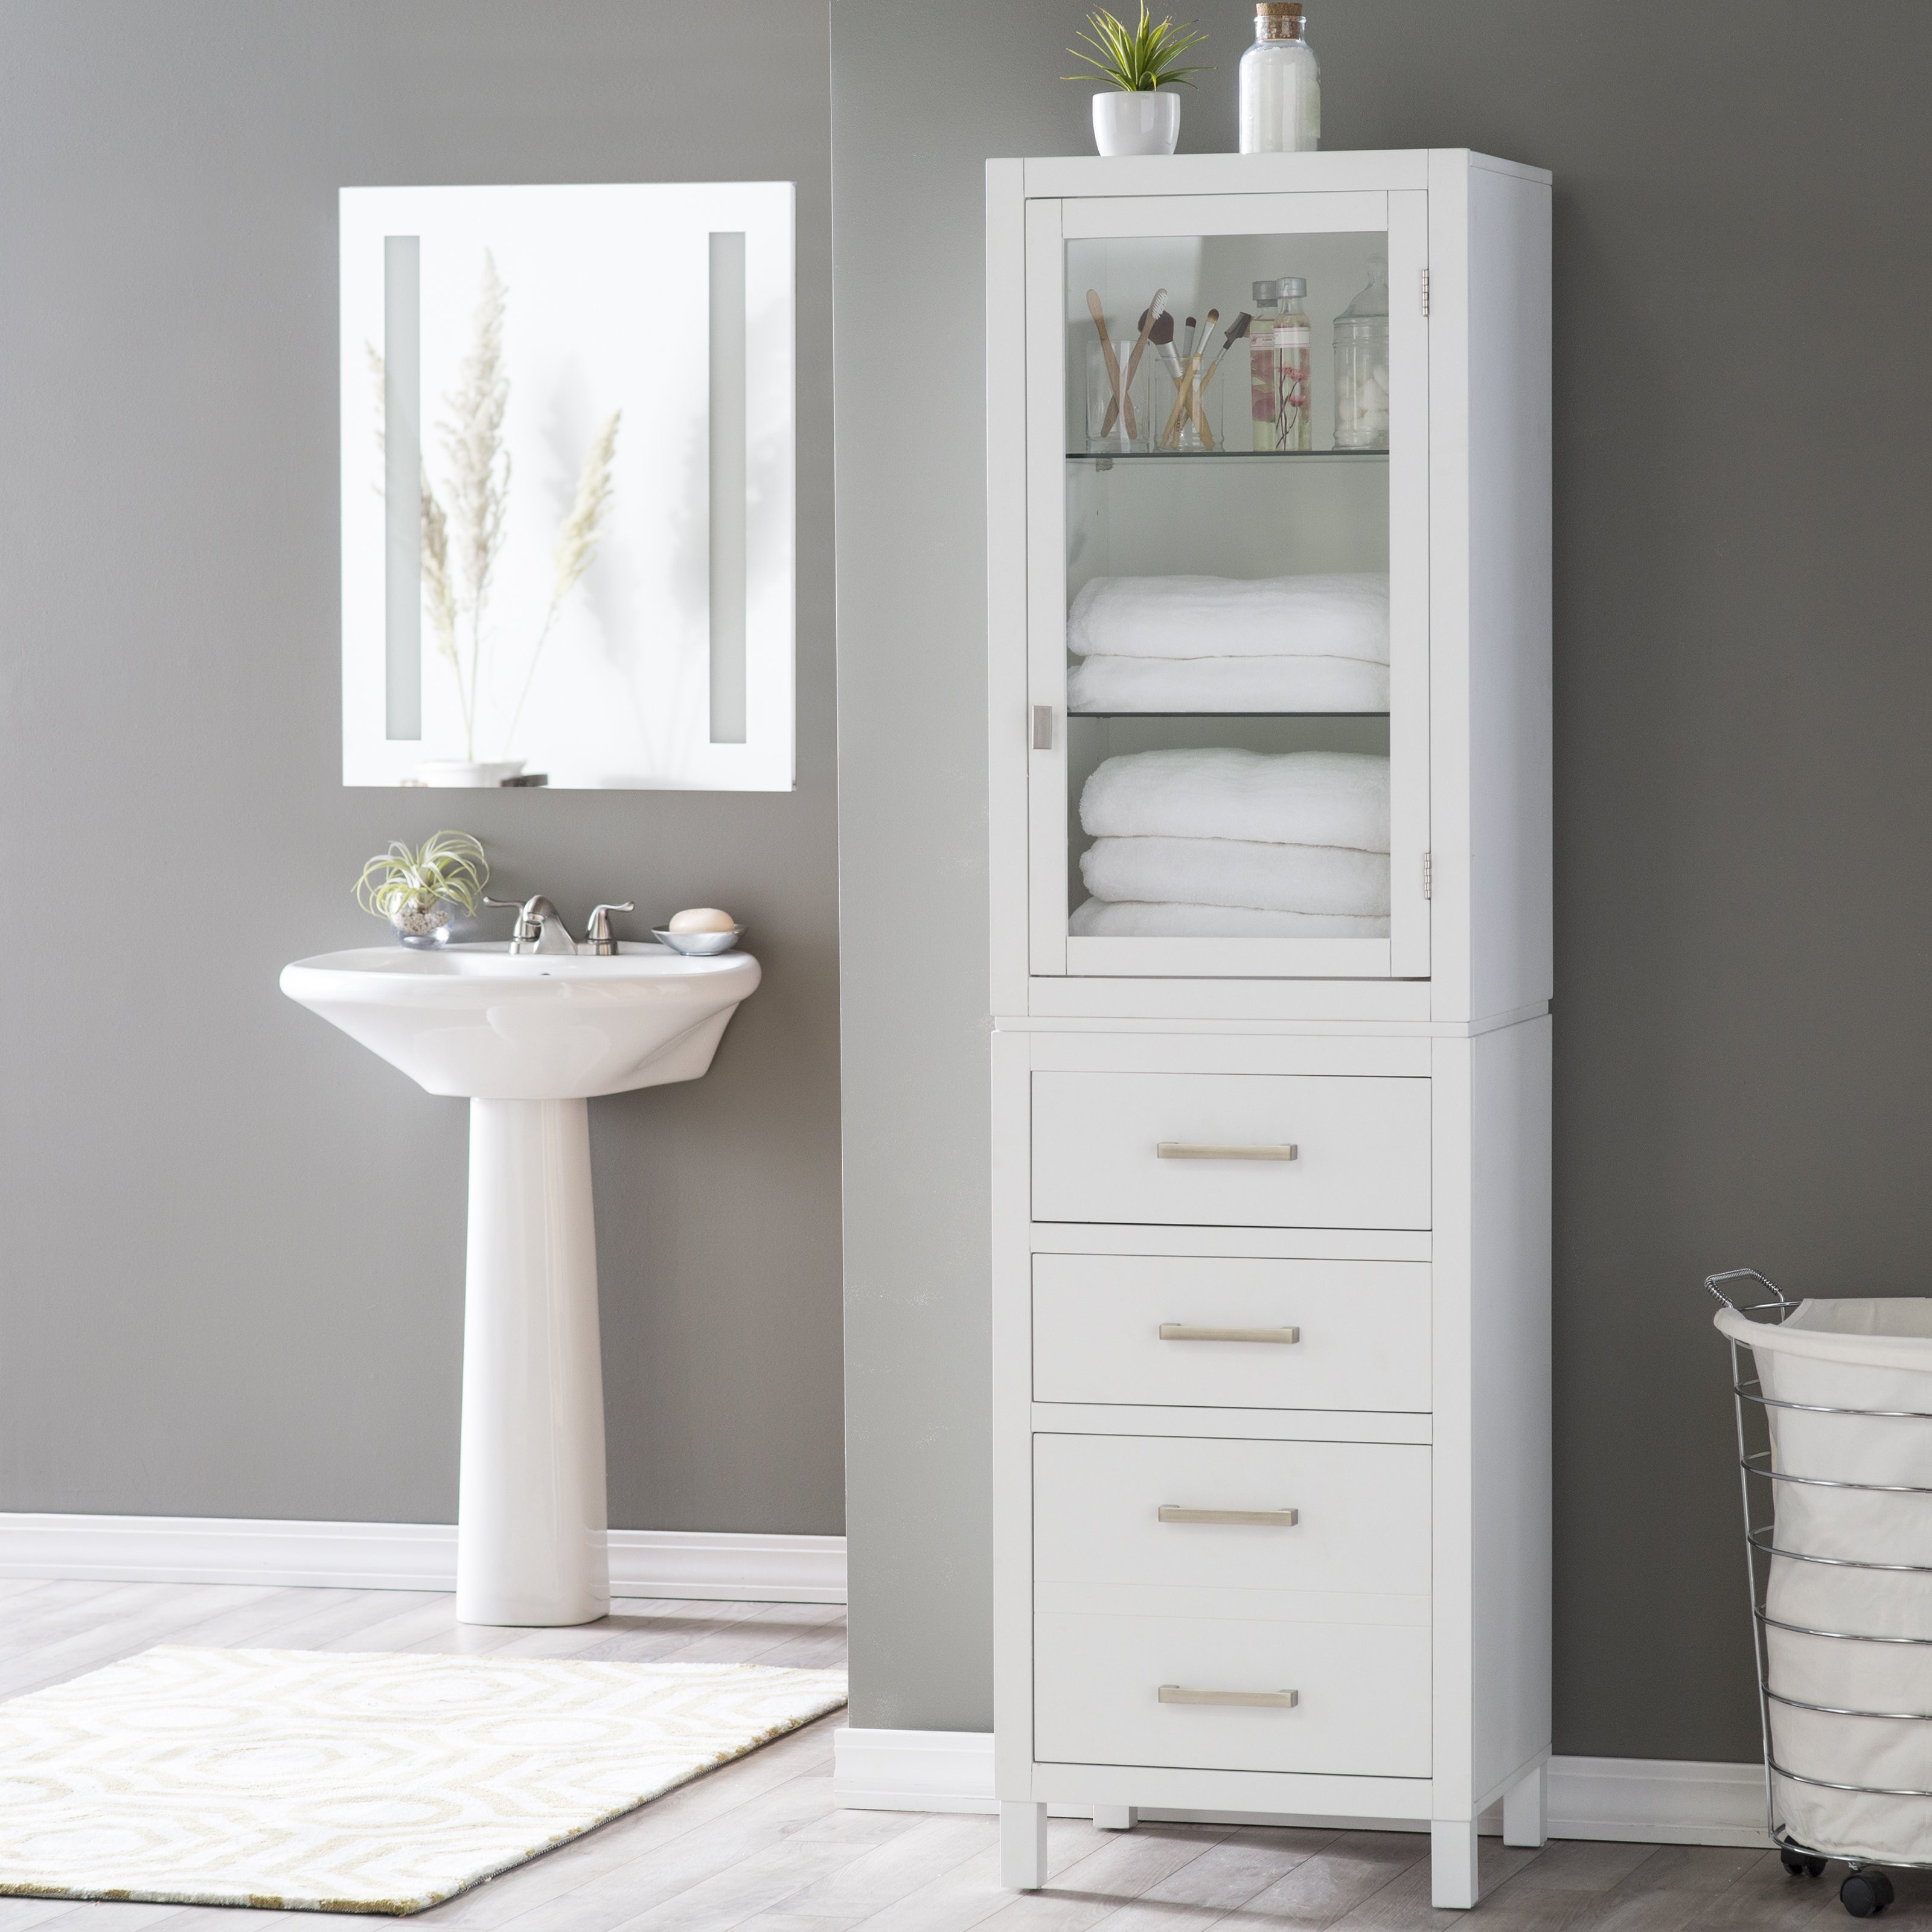 Best ideas about Bathroom Linen Tower . Save or Pin Belham Living Longbourn Linen Tower Linen Cabinets at Now.